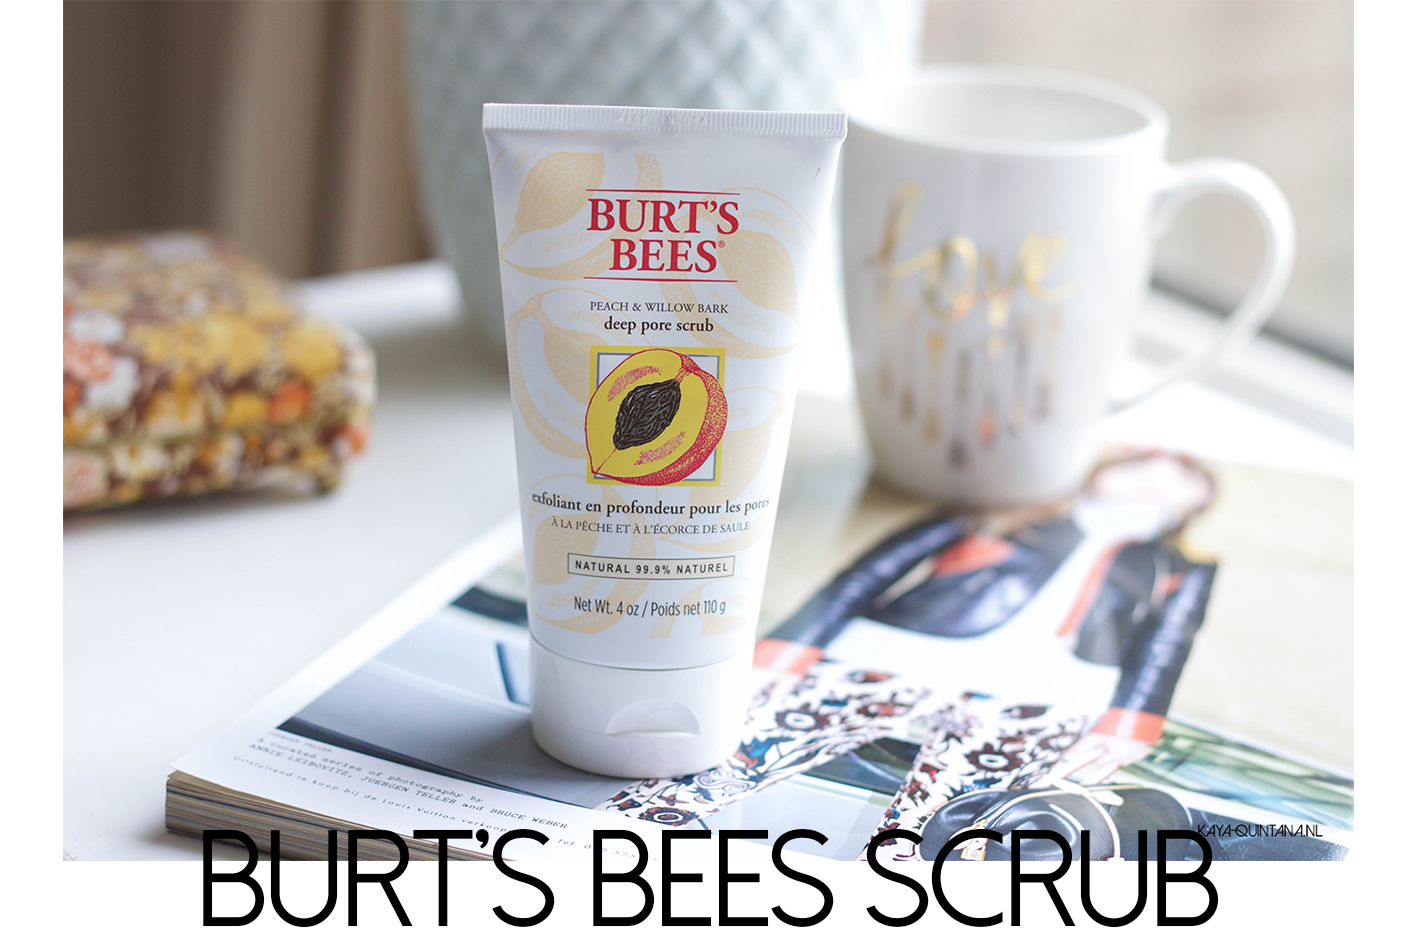 Burt's bees peach and willow bark deep pore scrub review